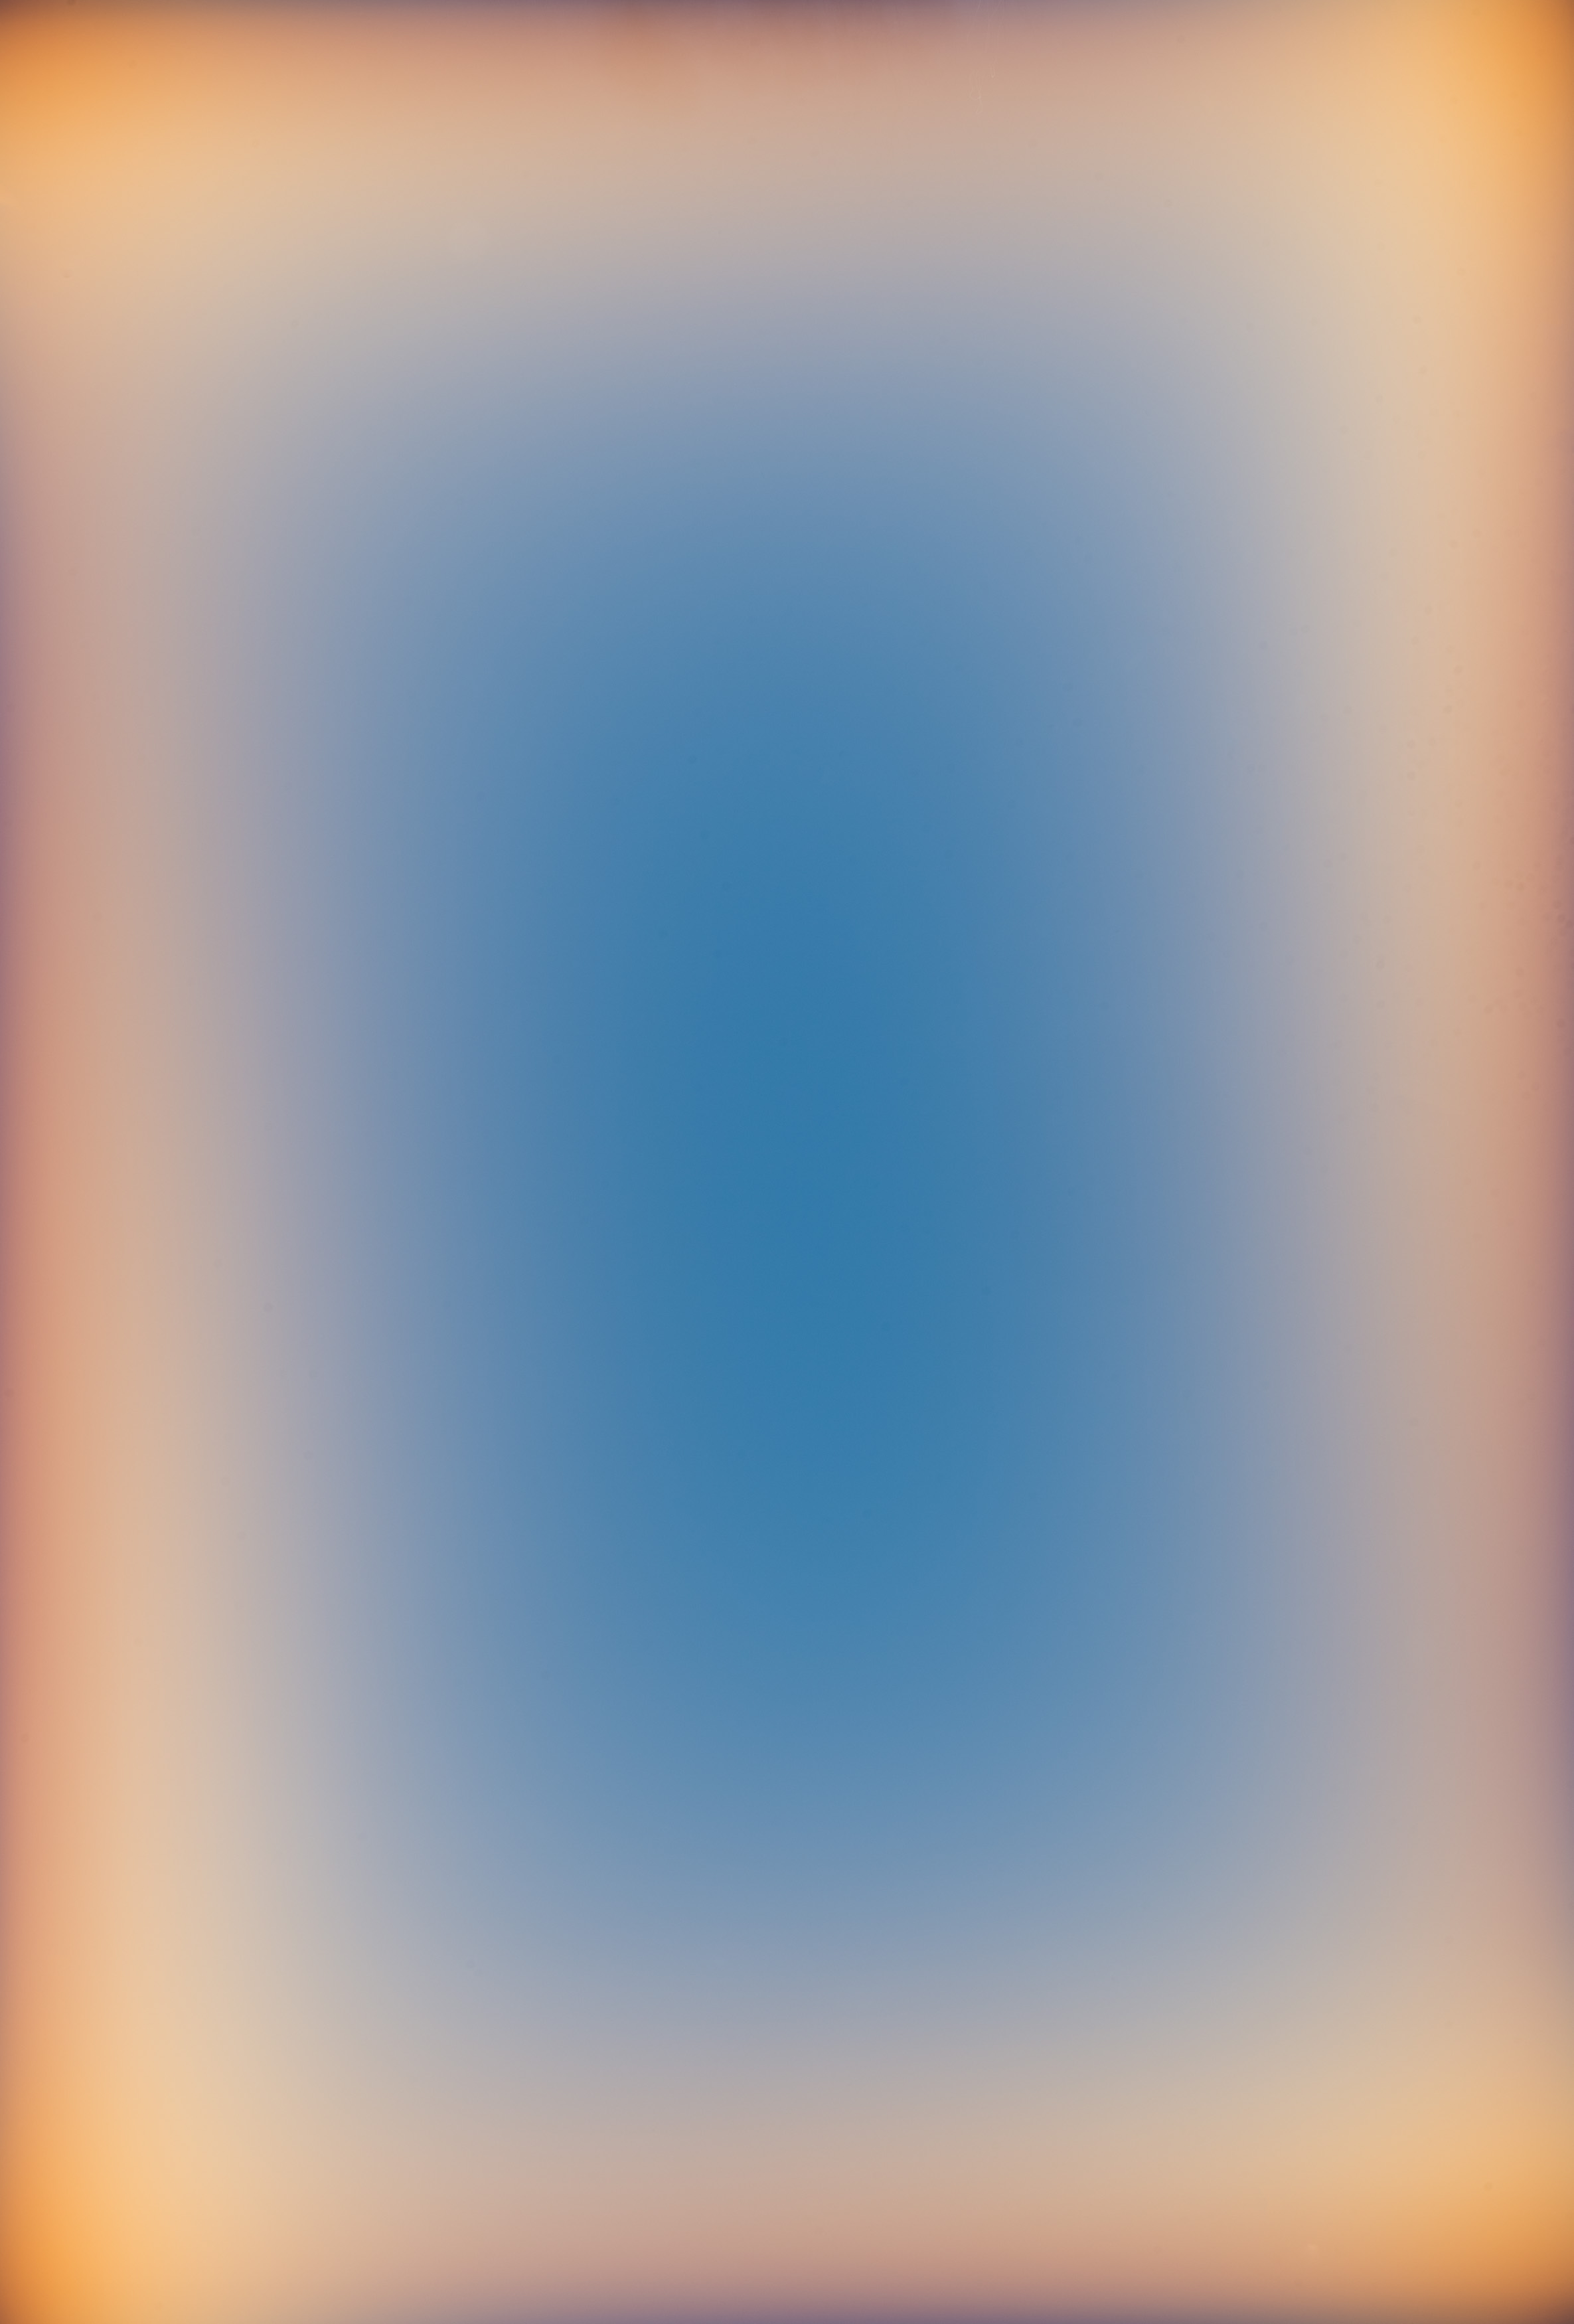 Gredient Study I, 2013 Archival pigment print 40x30 inches